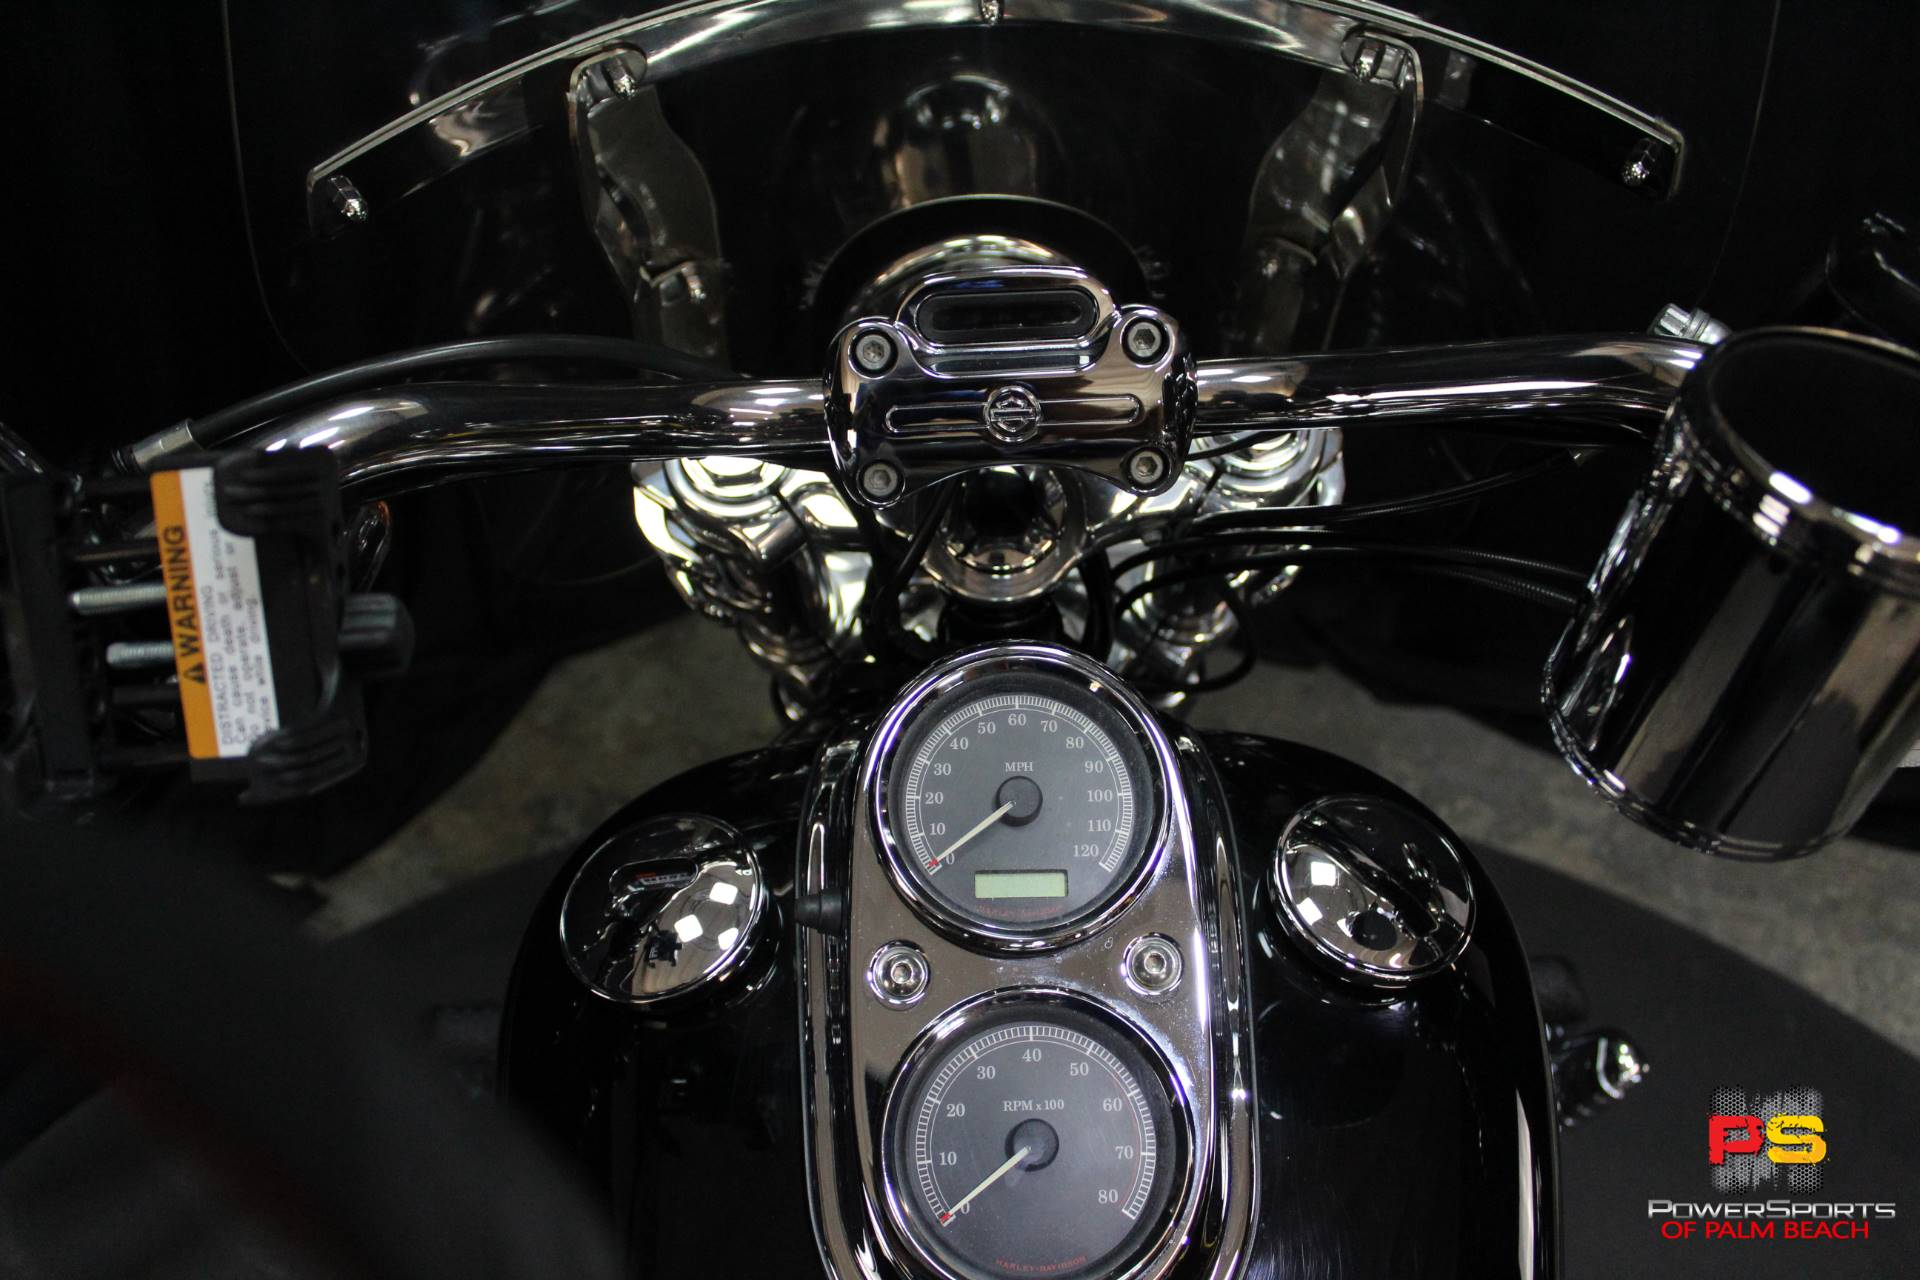 2008 Harley-Davidson Dyna Low Rider in Lake Park, Florida - Photo 37